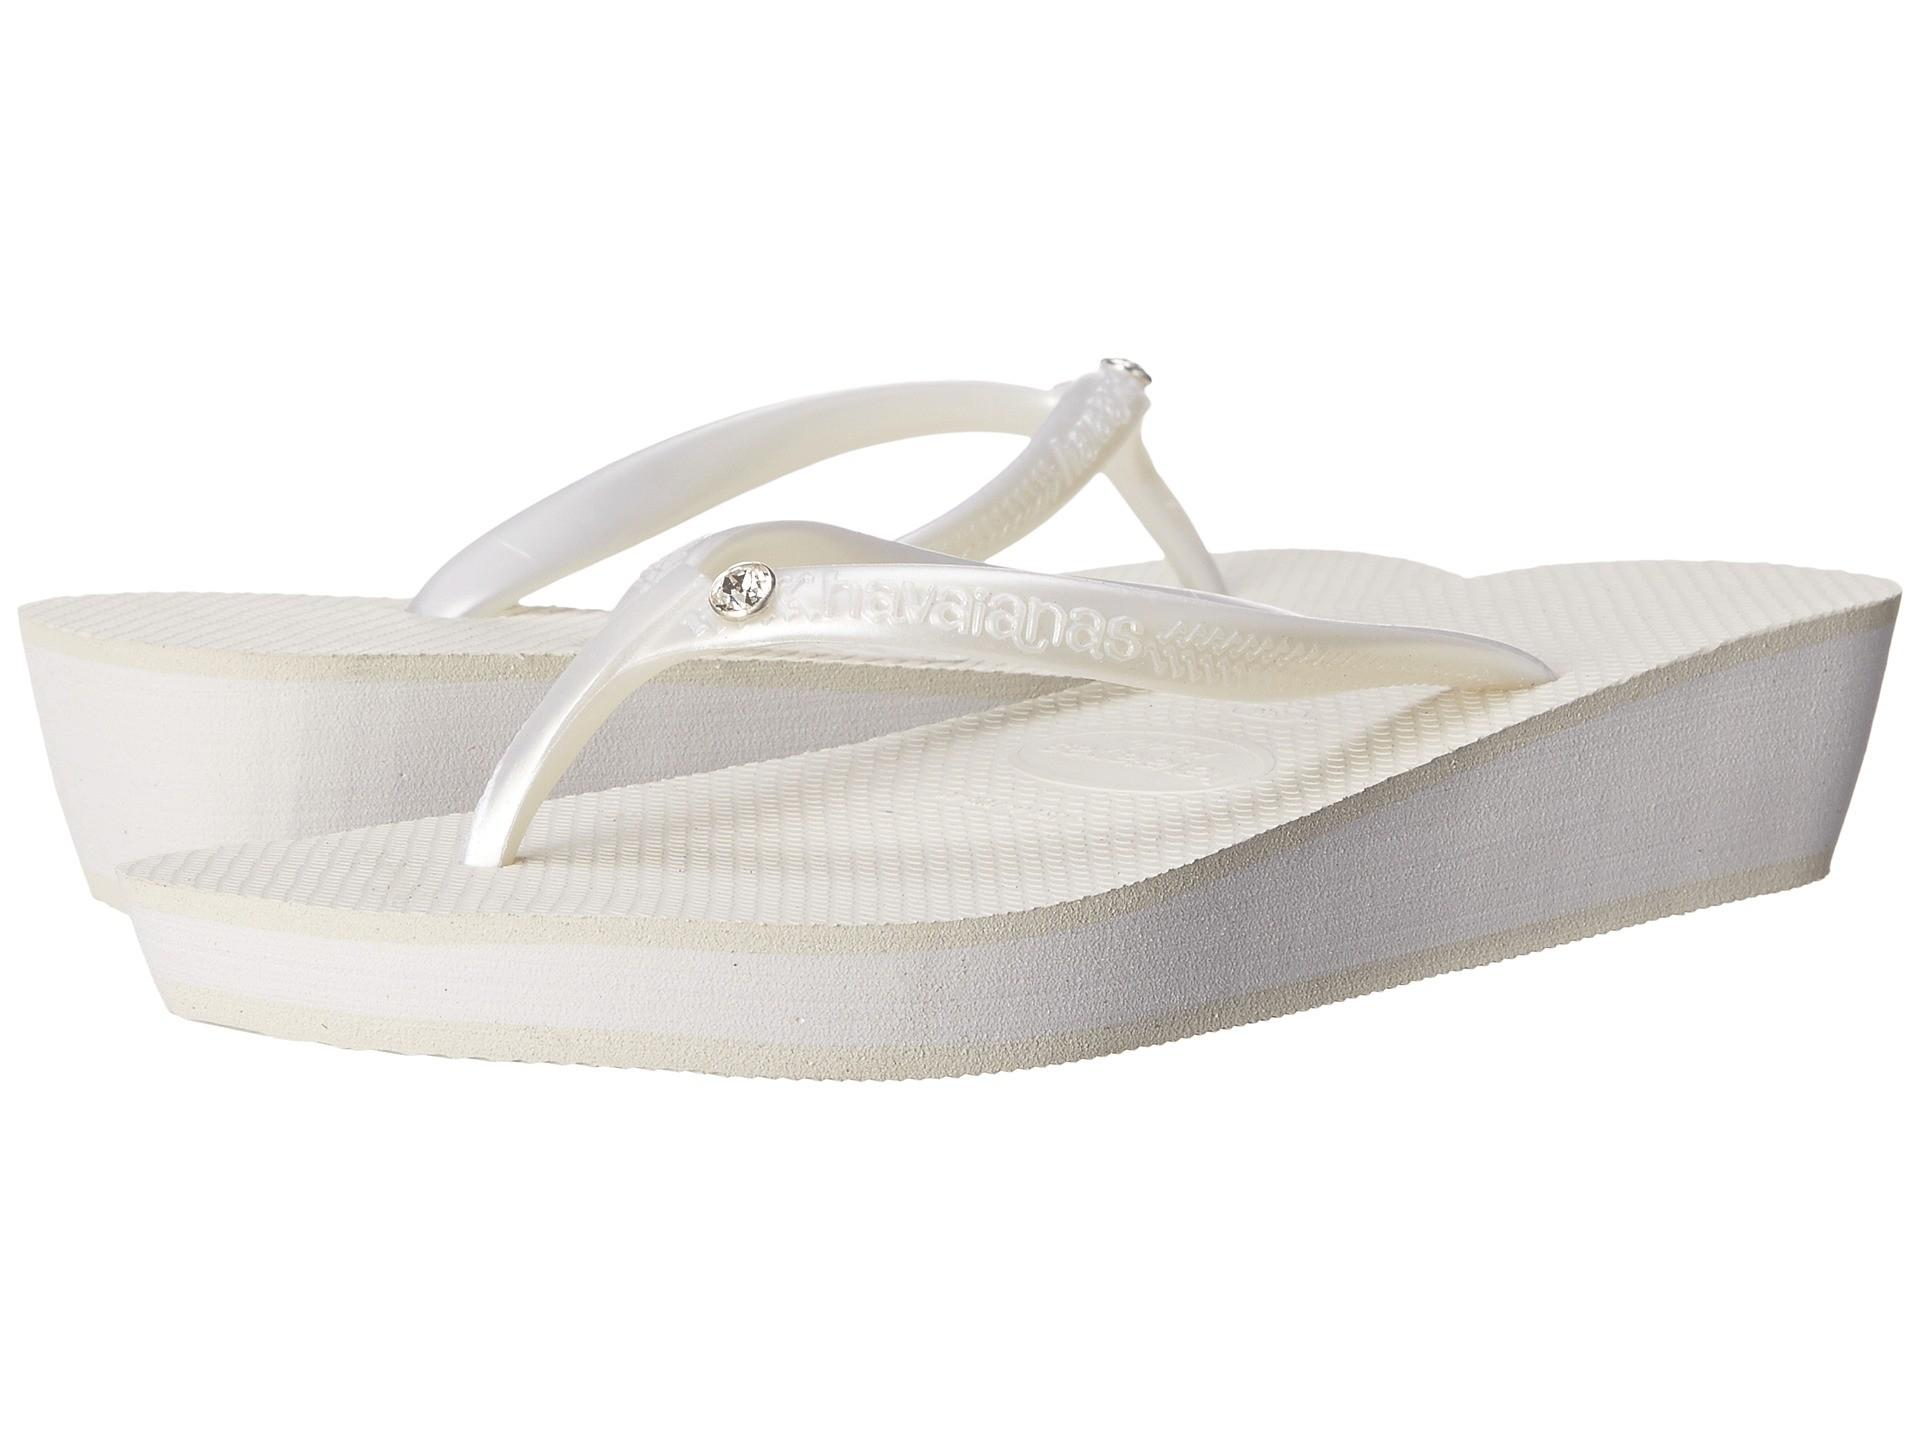 Havaianas Highlight Glamour Flip Flops White